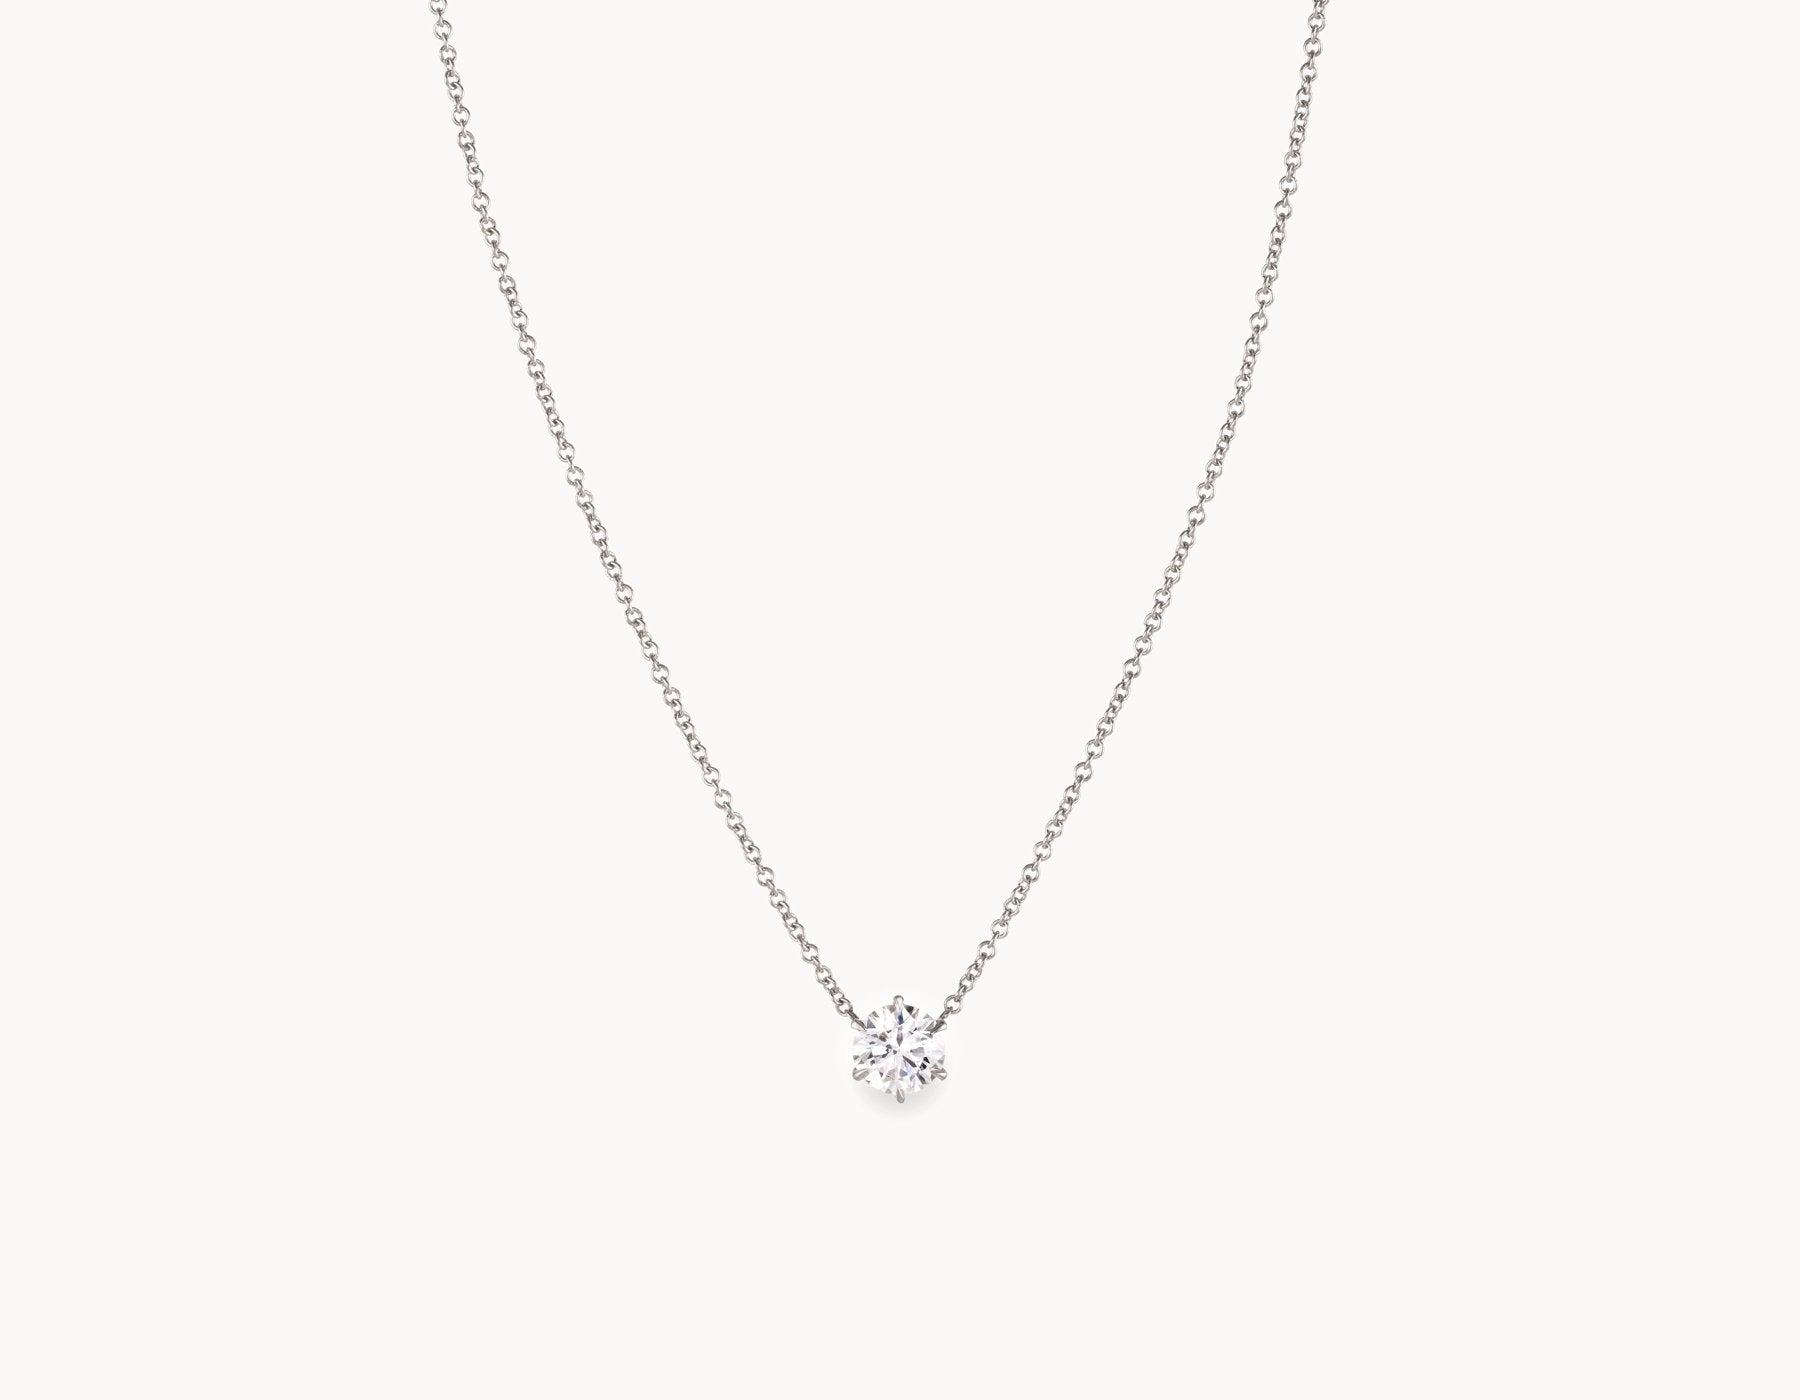 collections solitaire necklace lugaro canadiandiamond carat pearshape shape pear canadian diamond